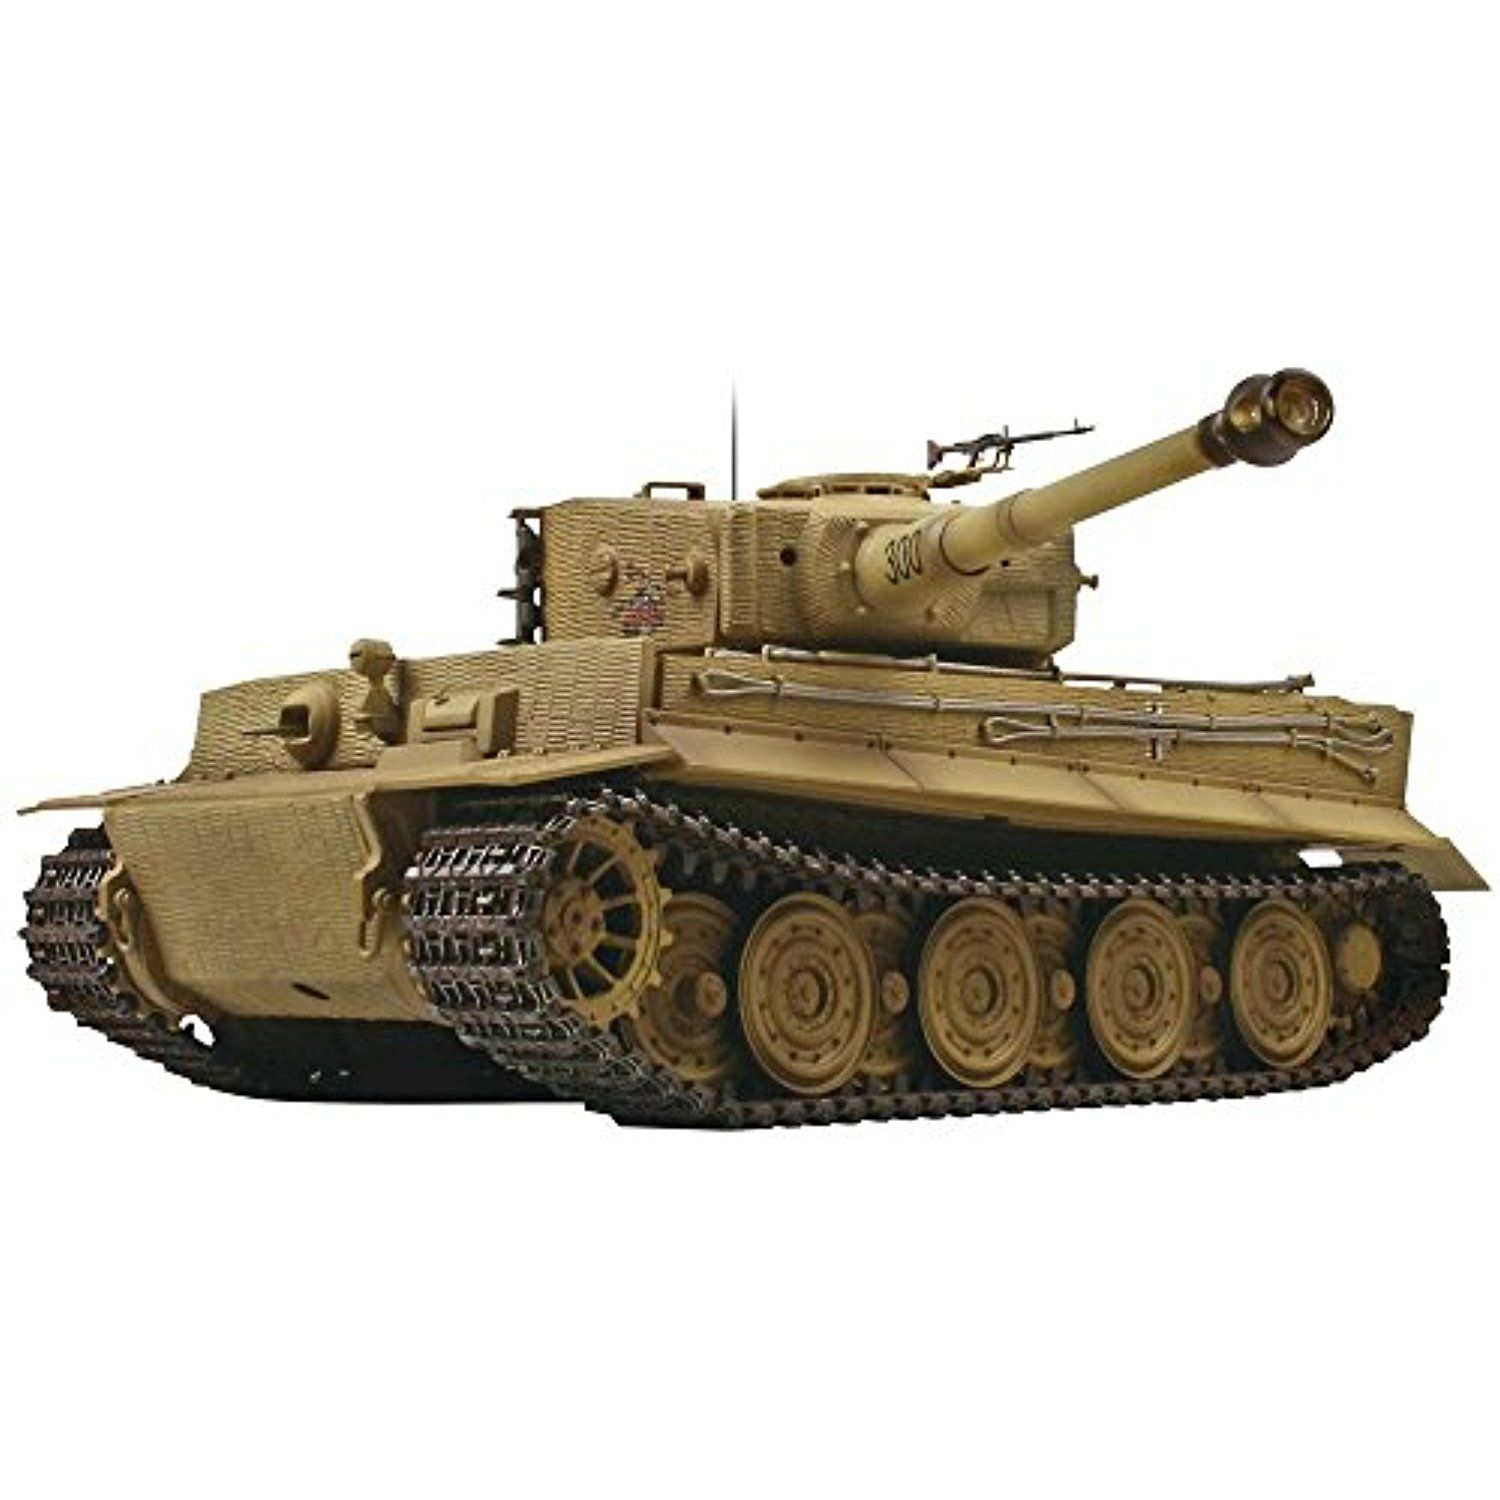 f044714c61e810 VS Tank 1 24 Scale Tiger I Electric-Powered Radio Controlled Ready-To-Run  Late Production Battle Tank with Desert Camouflage Scheme     Click on the  image ...